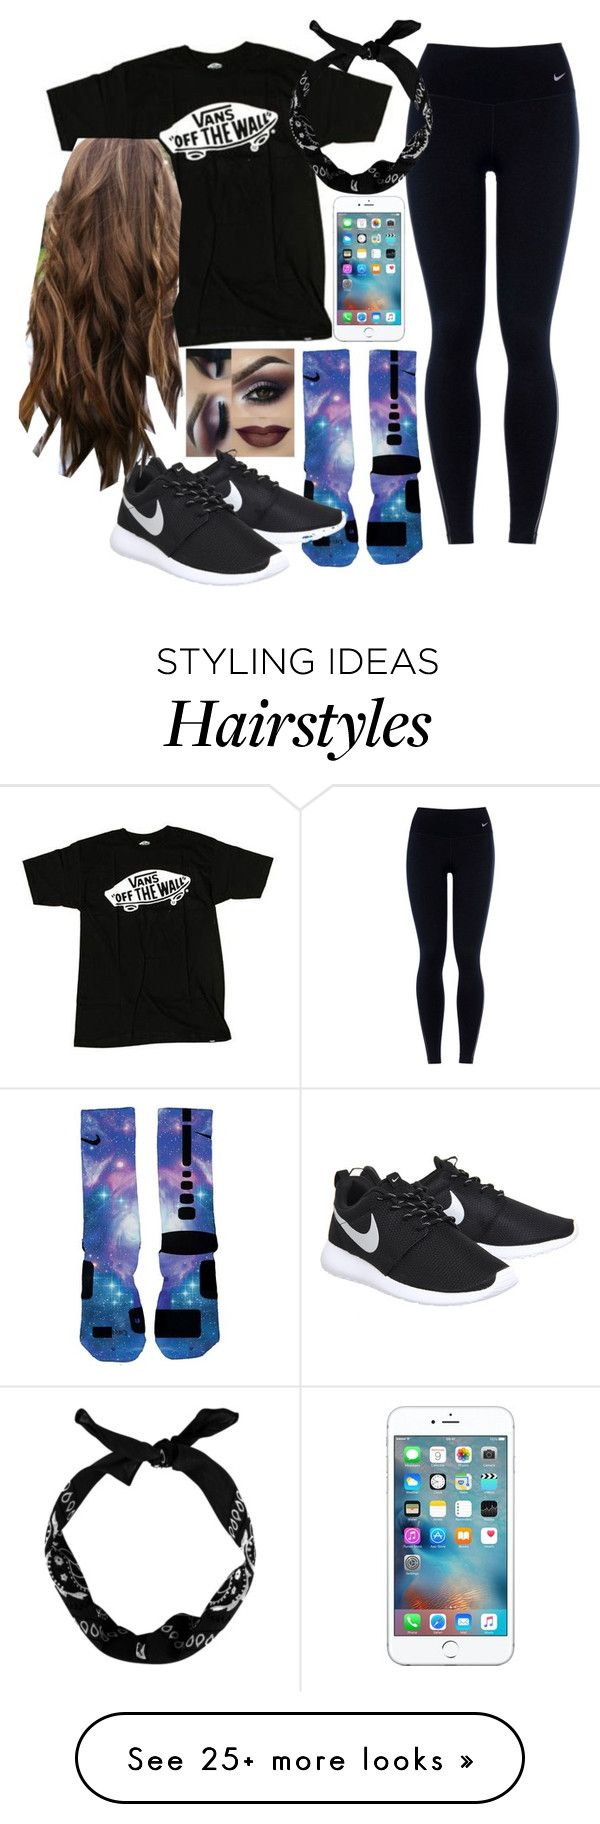 """""""is it just me or do these creep you out?"""" by preppygirl13 on Polyvore featuring NIKE, Vans, Apple, women's clothing, women, female, woman, misses and juniors"""